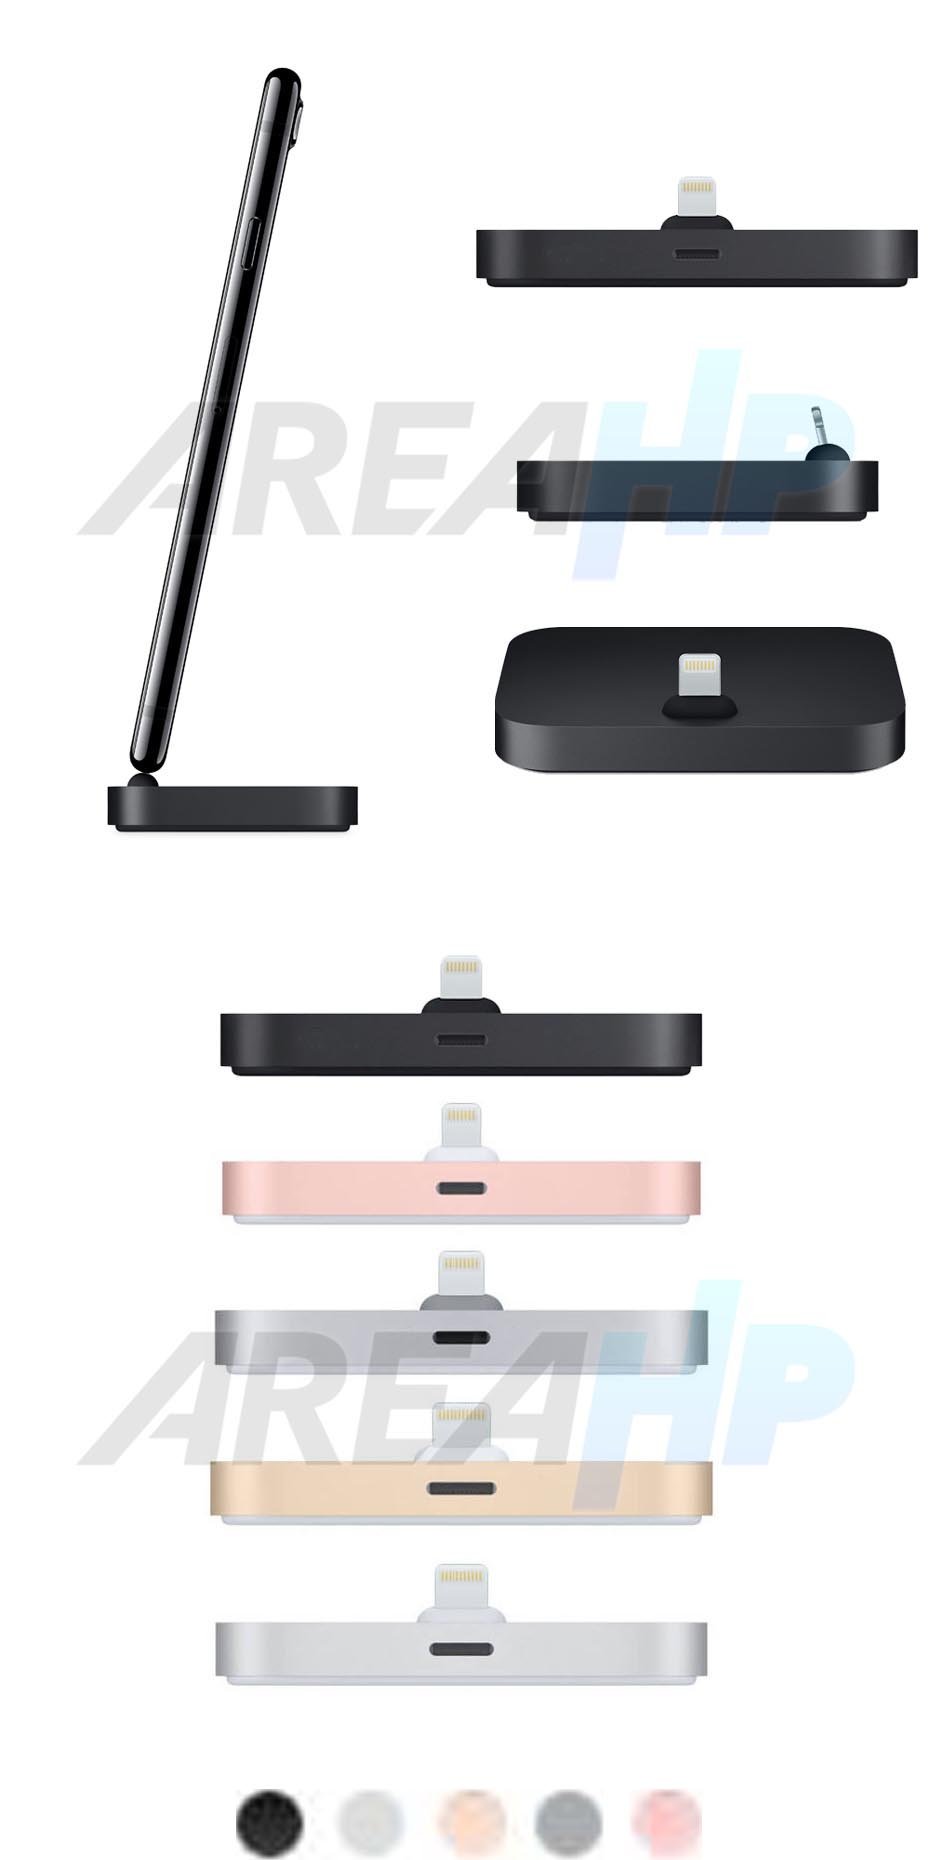 iPhone Lightning Dock Charger Overview